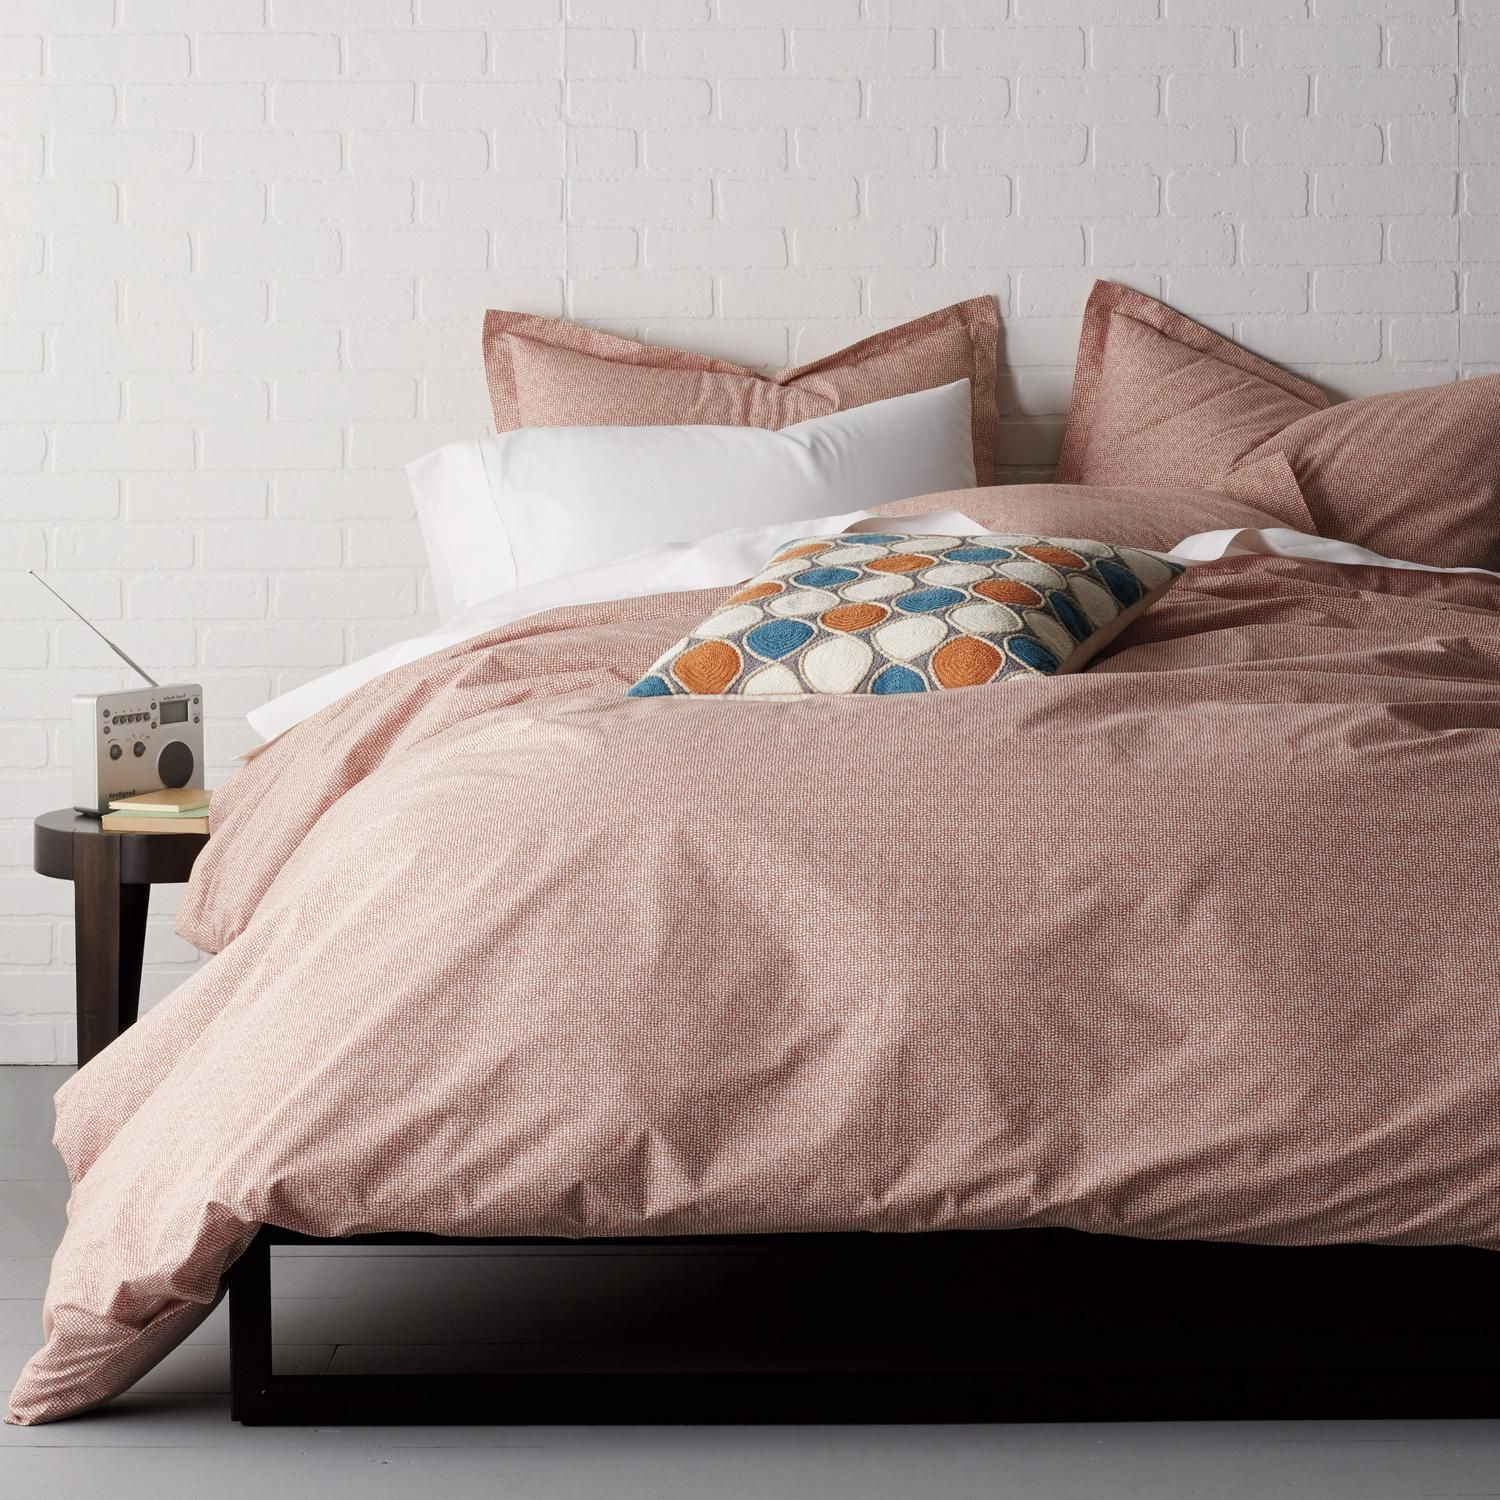 Cstudio Home On Point Organic Cotton Percale Duvet Cover